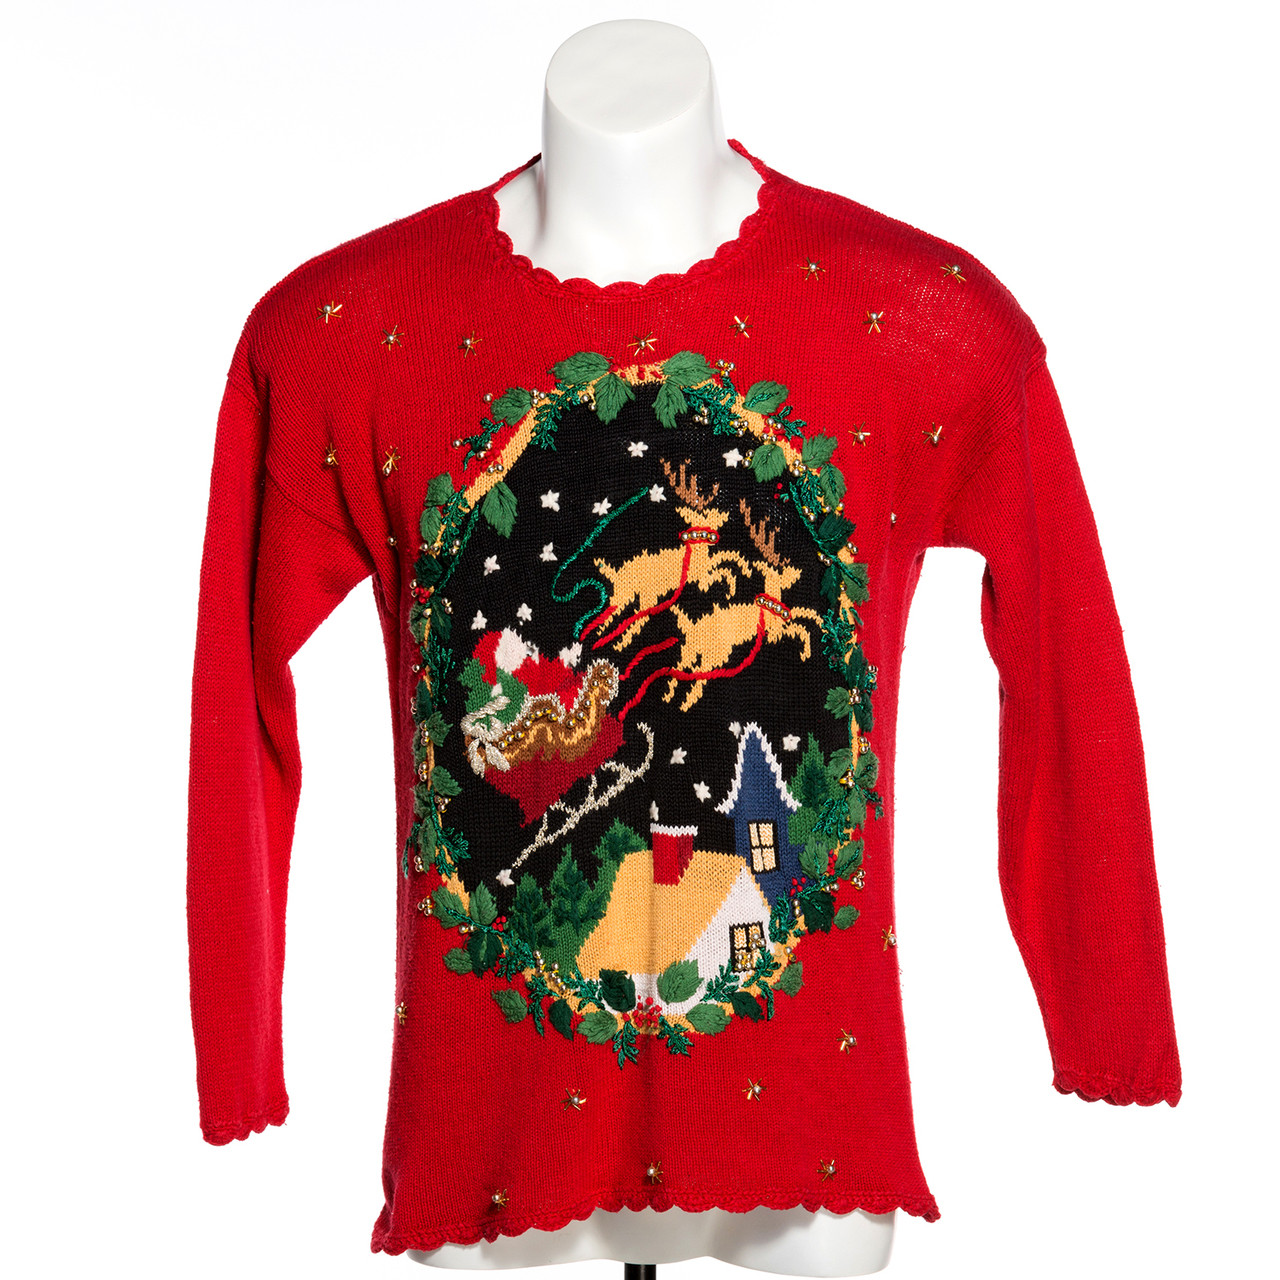 Vintage Christmas Sweaters.Here Comes Santa Claus Vintage Ugly Christmas Sweater